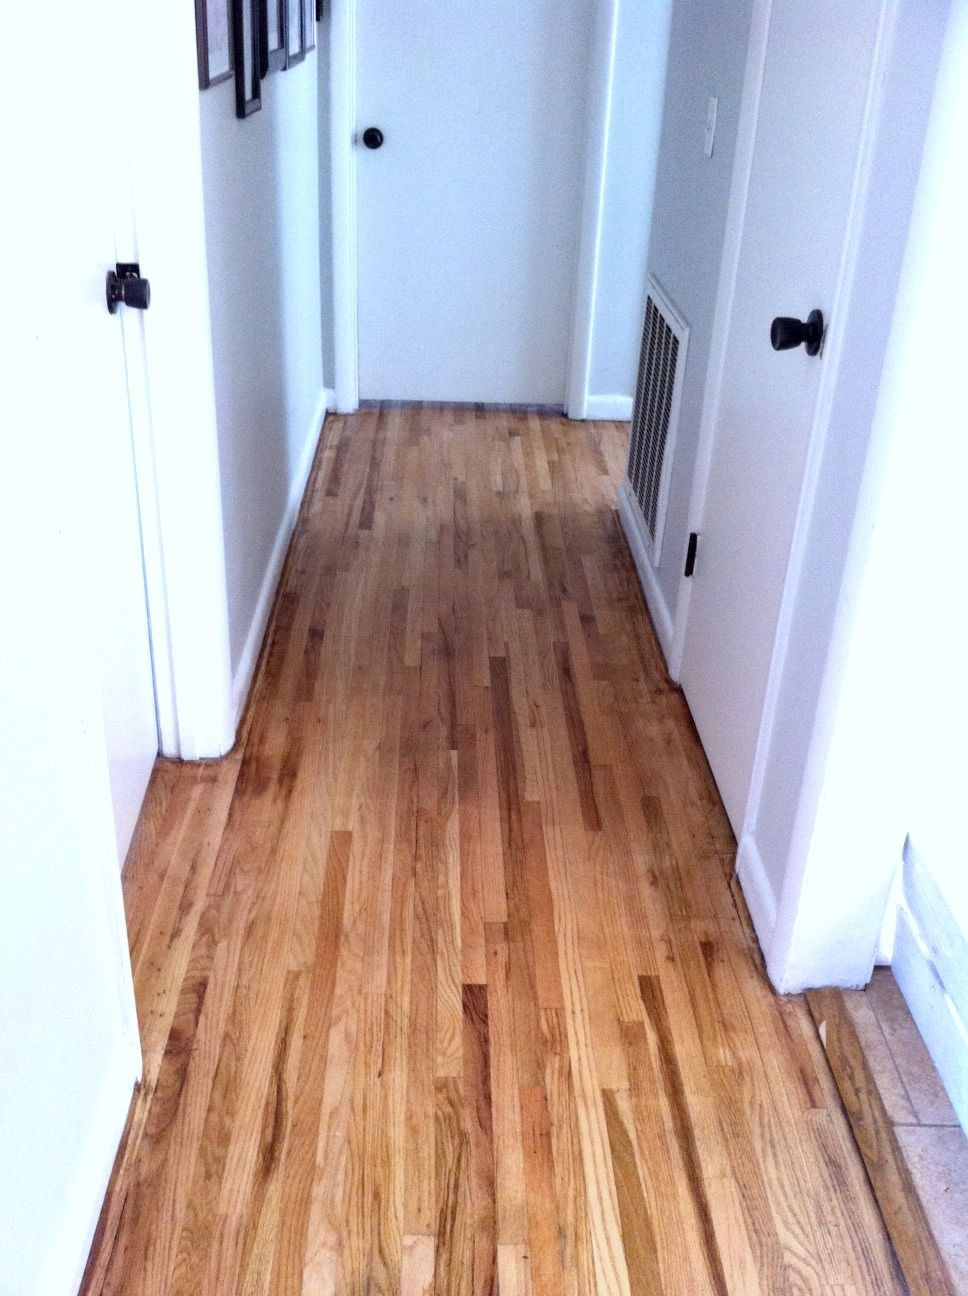 average cost of hardwood floors per square foot of cost of putting in wood floors beautiful hardwood floors in kitchen regarding cost of putting in wood floors elegant this is what happens when you don t listen